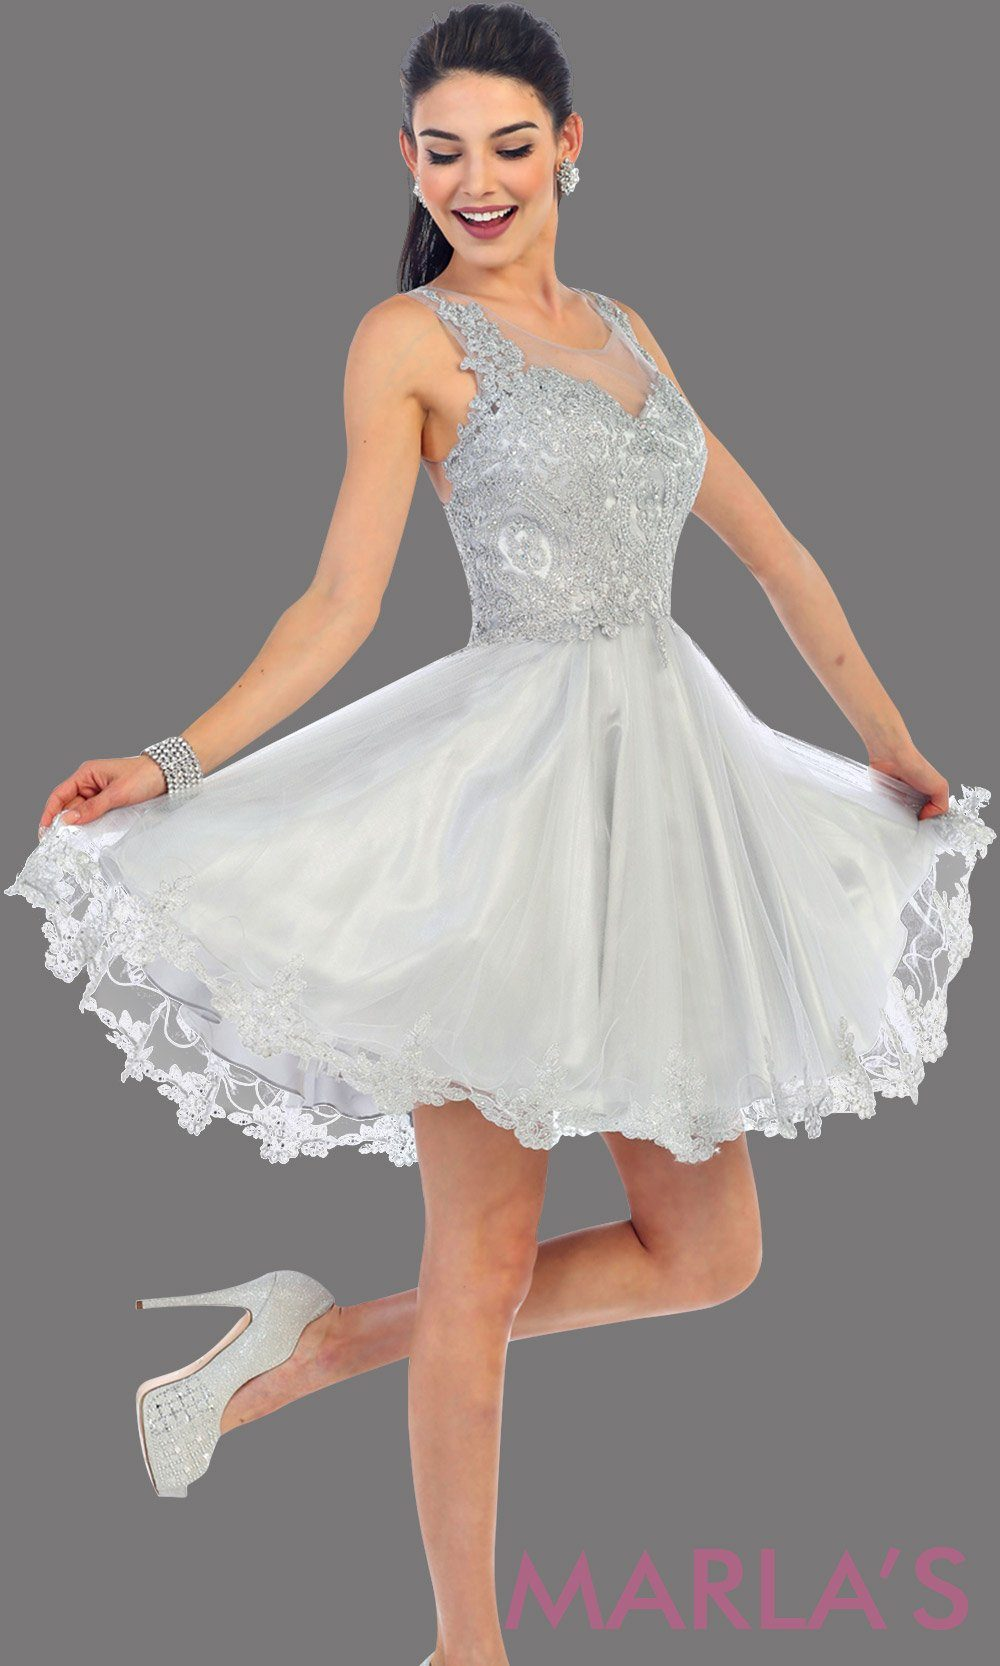 Short high neck silver grade 8 grad puffy dress with gold lace. This light gray grade 8 graduation short dress and pretty. Can be worn for quinceanera damas, short prom dress, bah mitzvah, sweet 16, confirmation. Avail in plus size